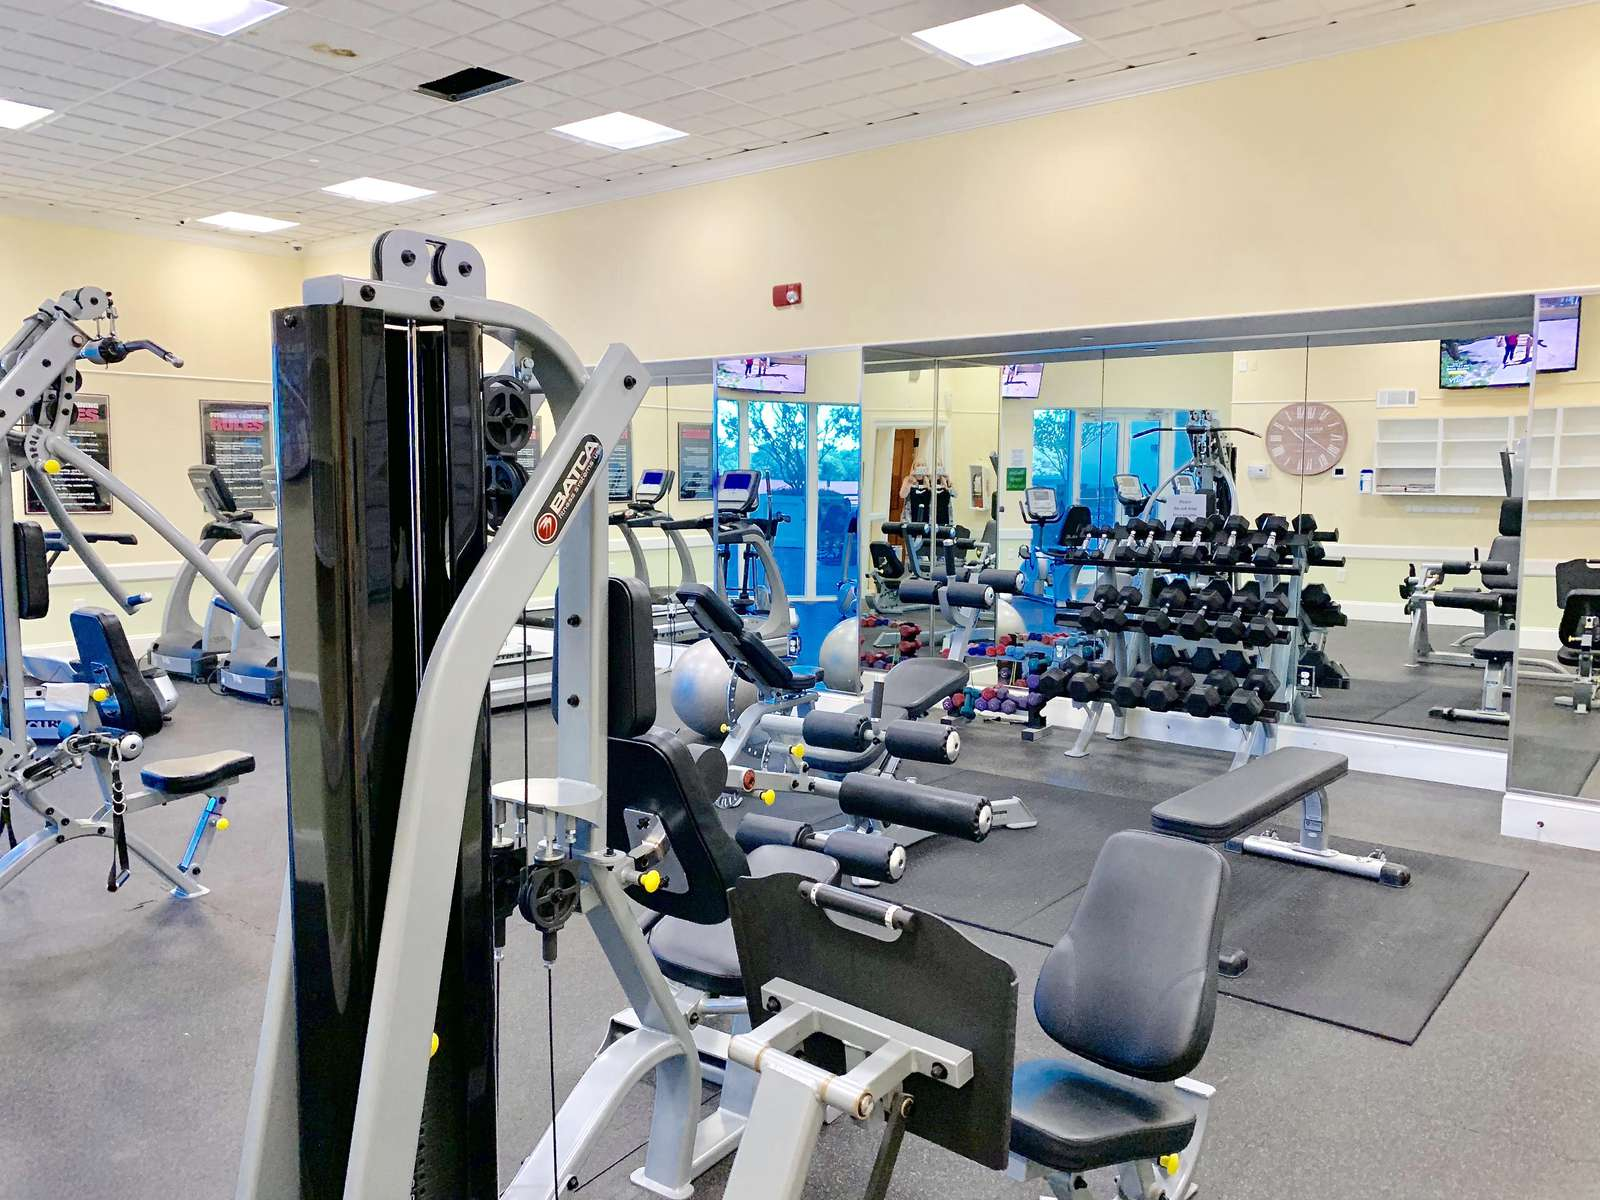 State of the art 5th floor fitness center